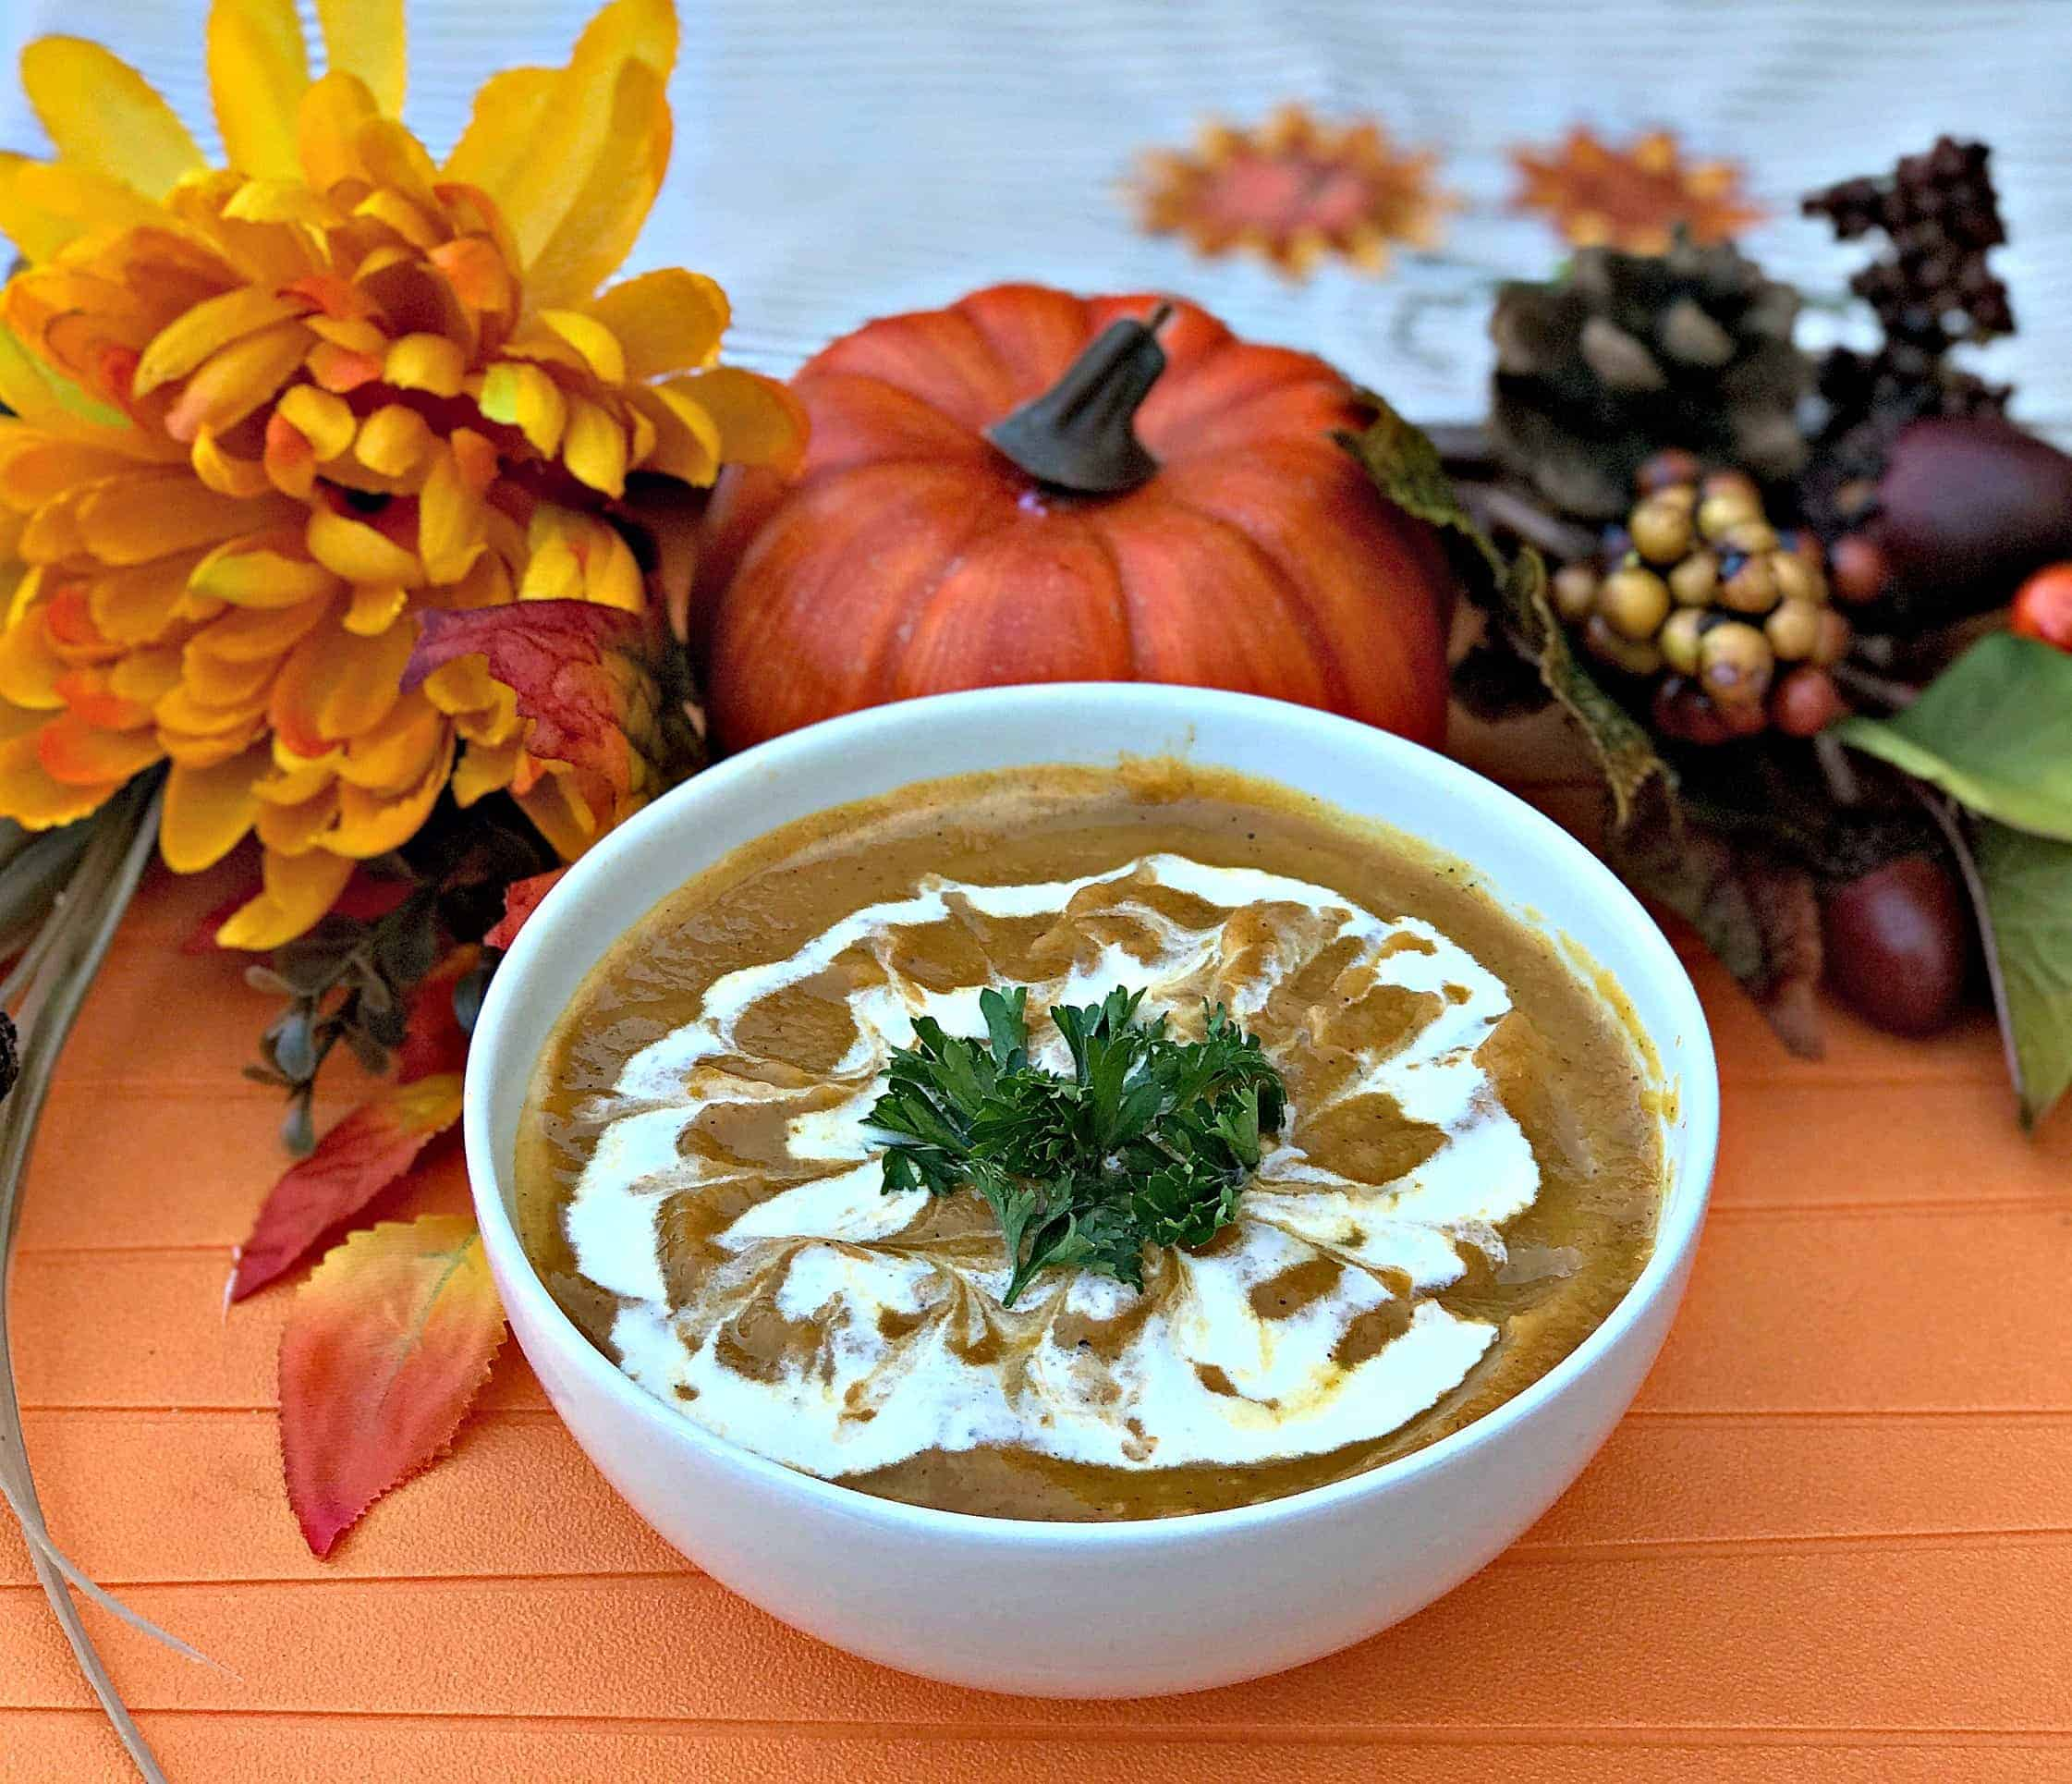 Instant Pot Pumpkin Spice and Sweet Potato Soup in a white bowl with fall decor in the background